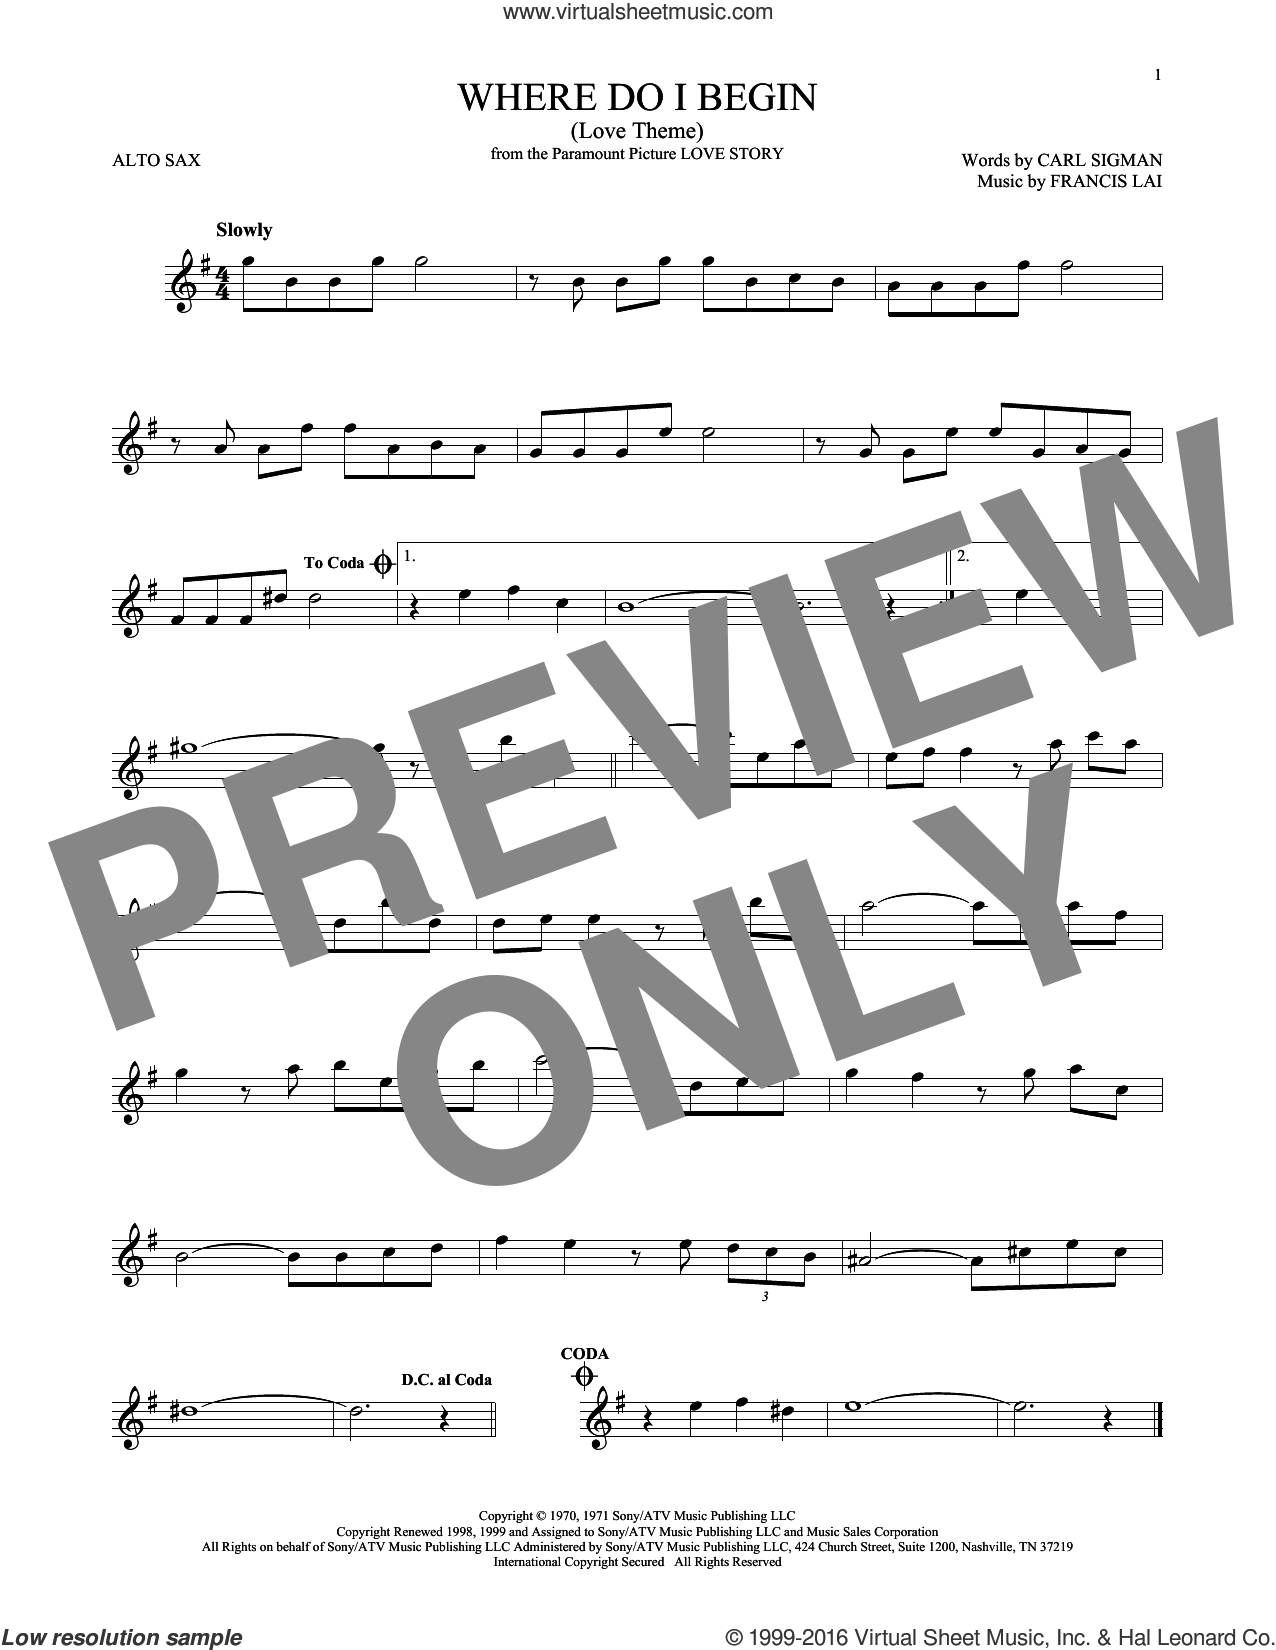 Where Do I Begin (Love Theme) sheet music for alto saxophone solo by Andy Williams, Carl Sigman and Francis Lai, intermediate skill level